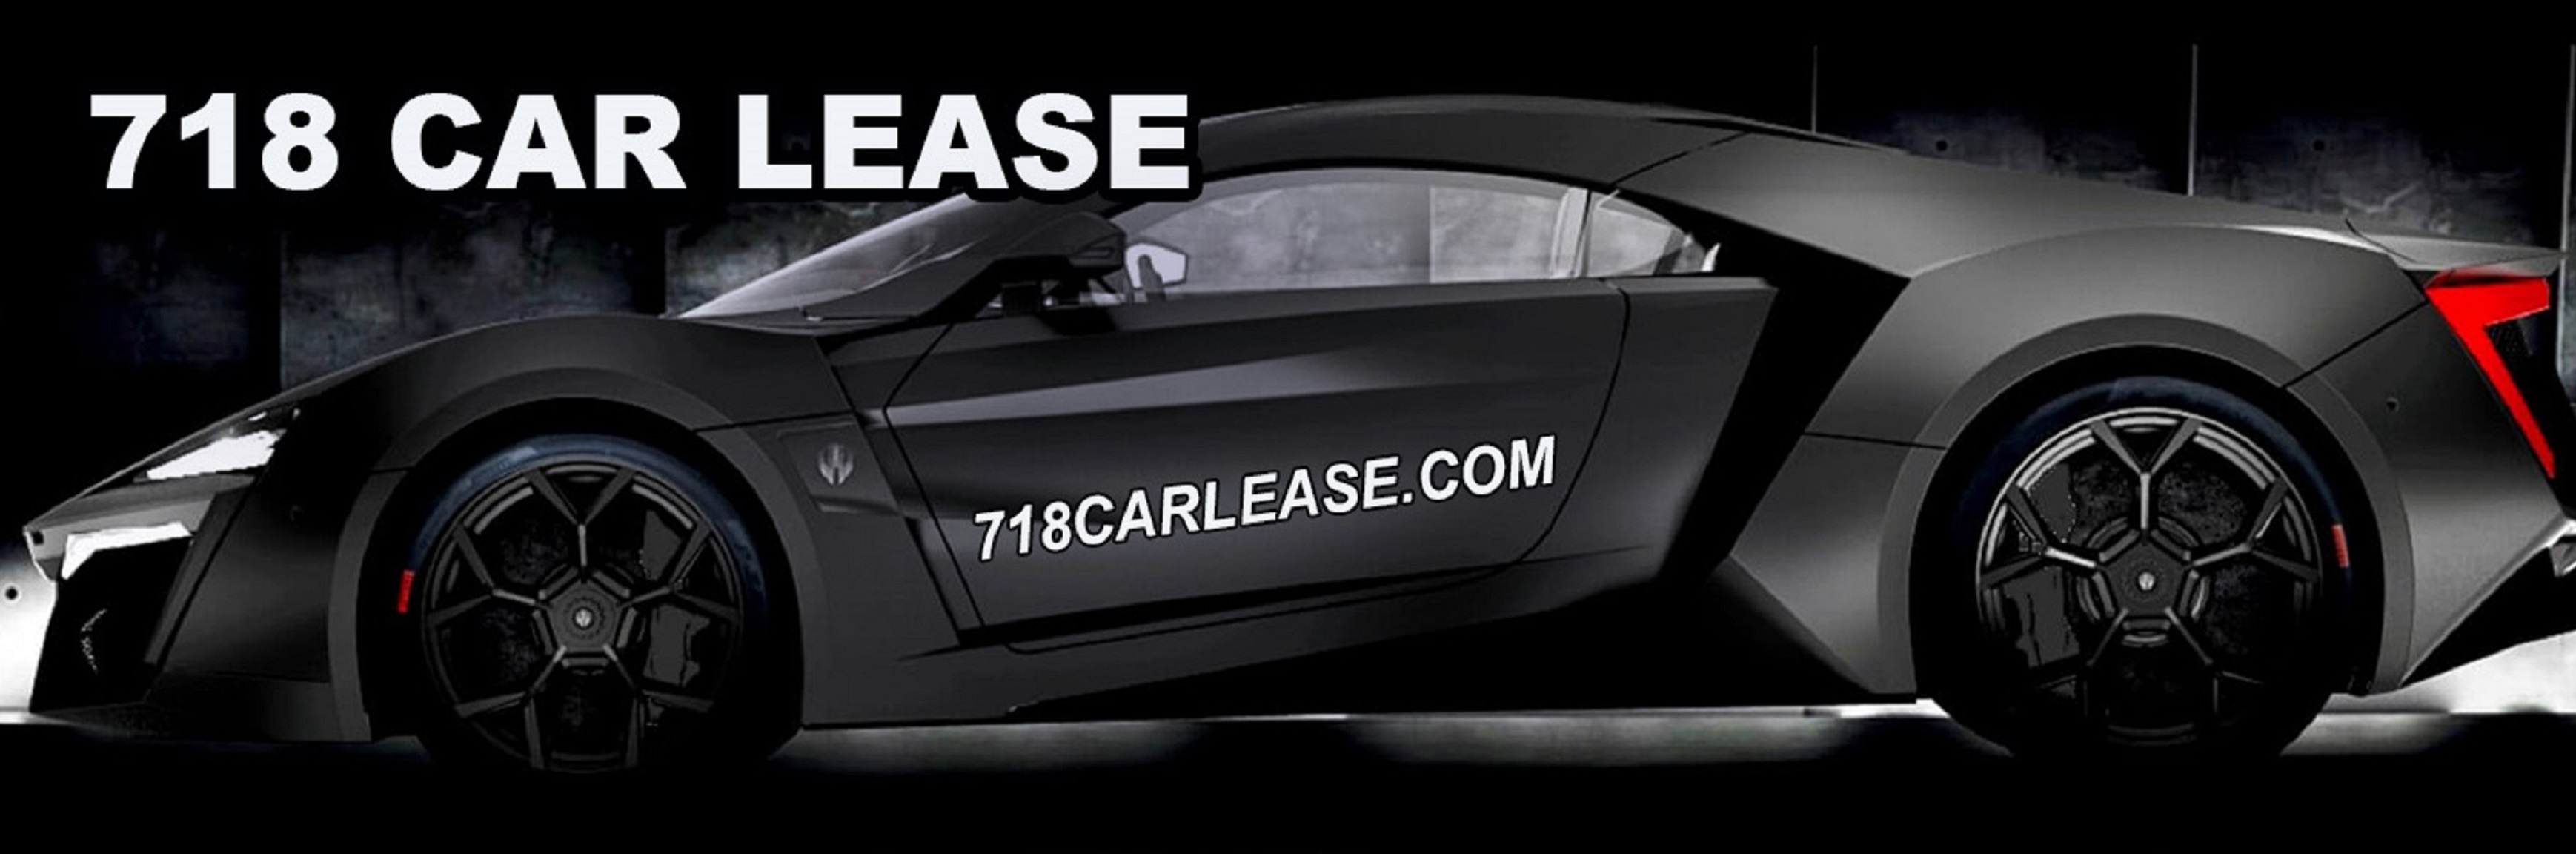 718 CAR LEASE - BEST CAR LEASING SERVICE